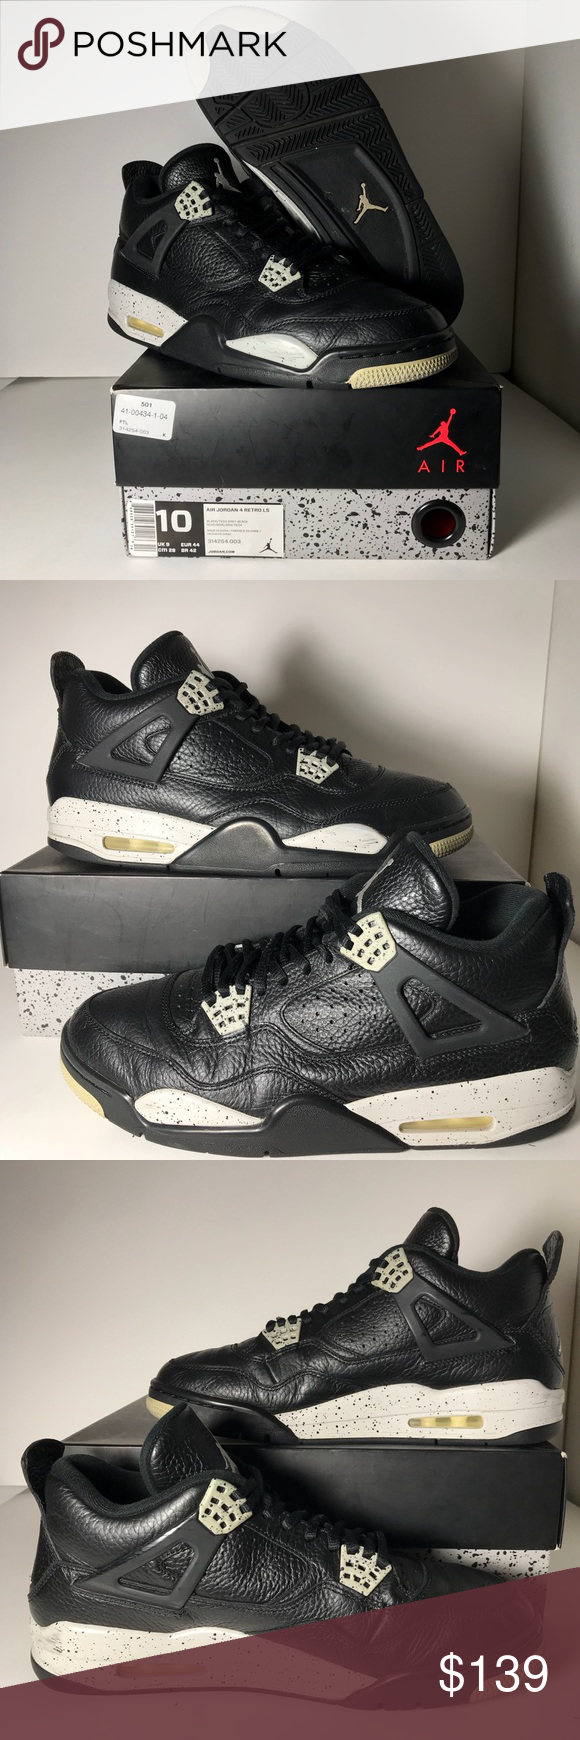 """best service af1d6 05e23 Jordan 4 """"Oreo"""" Good condition on the 4s. The yellowing is ..."""